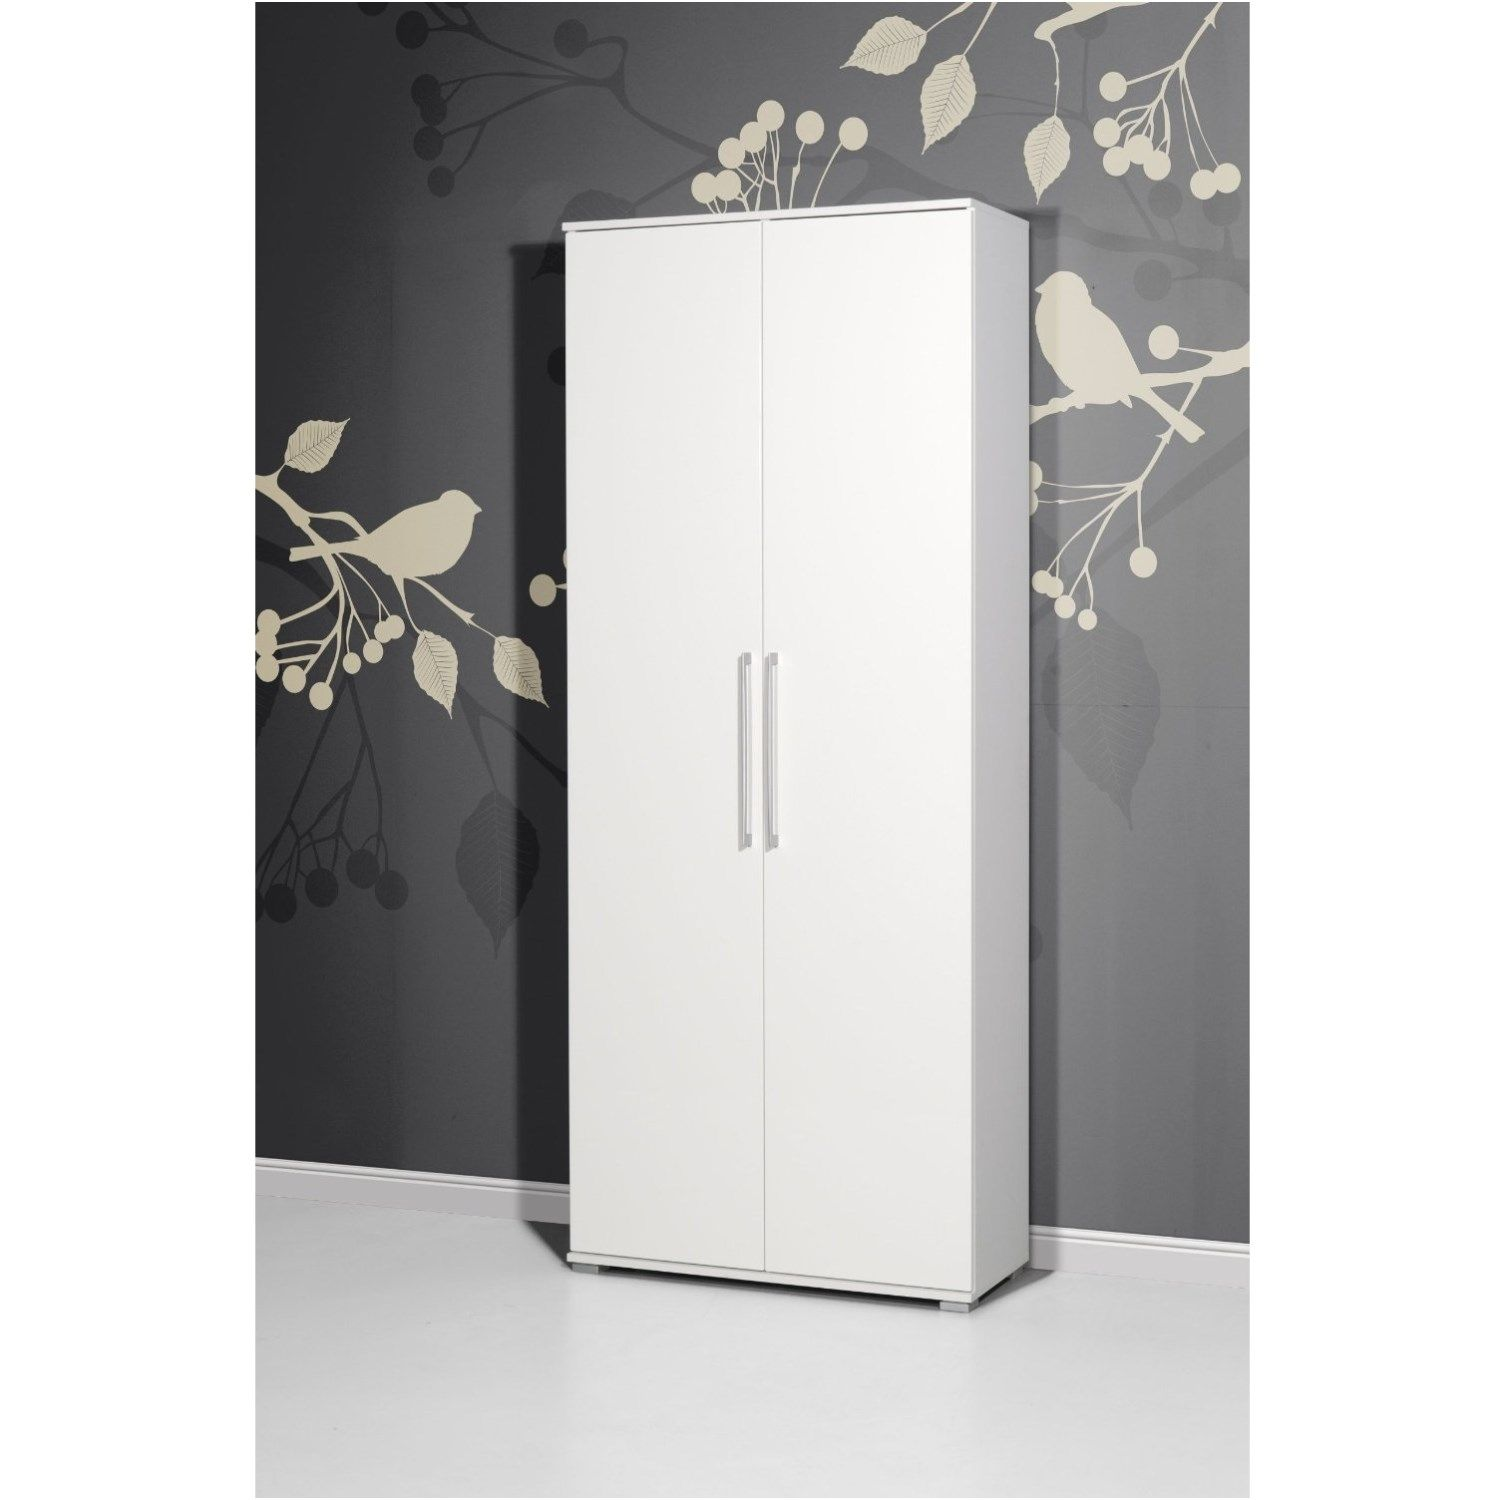 Hall Cupboards Furniture broad range of hall storage furniture including shoe cabinets